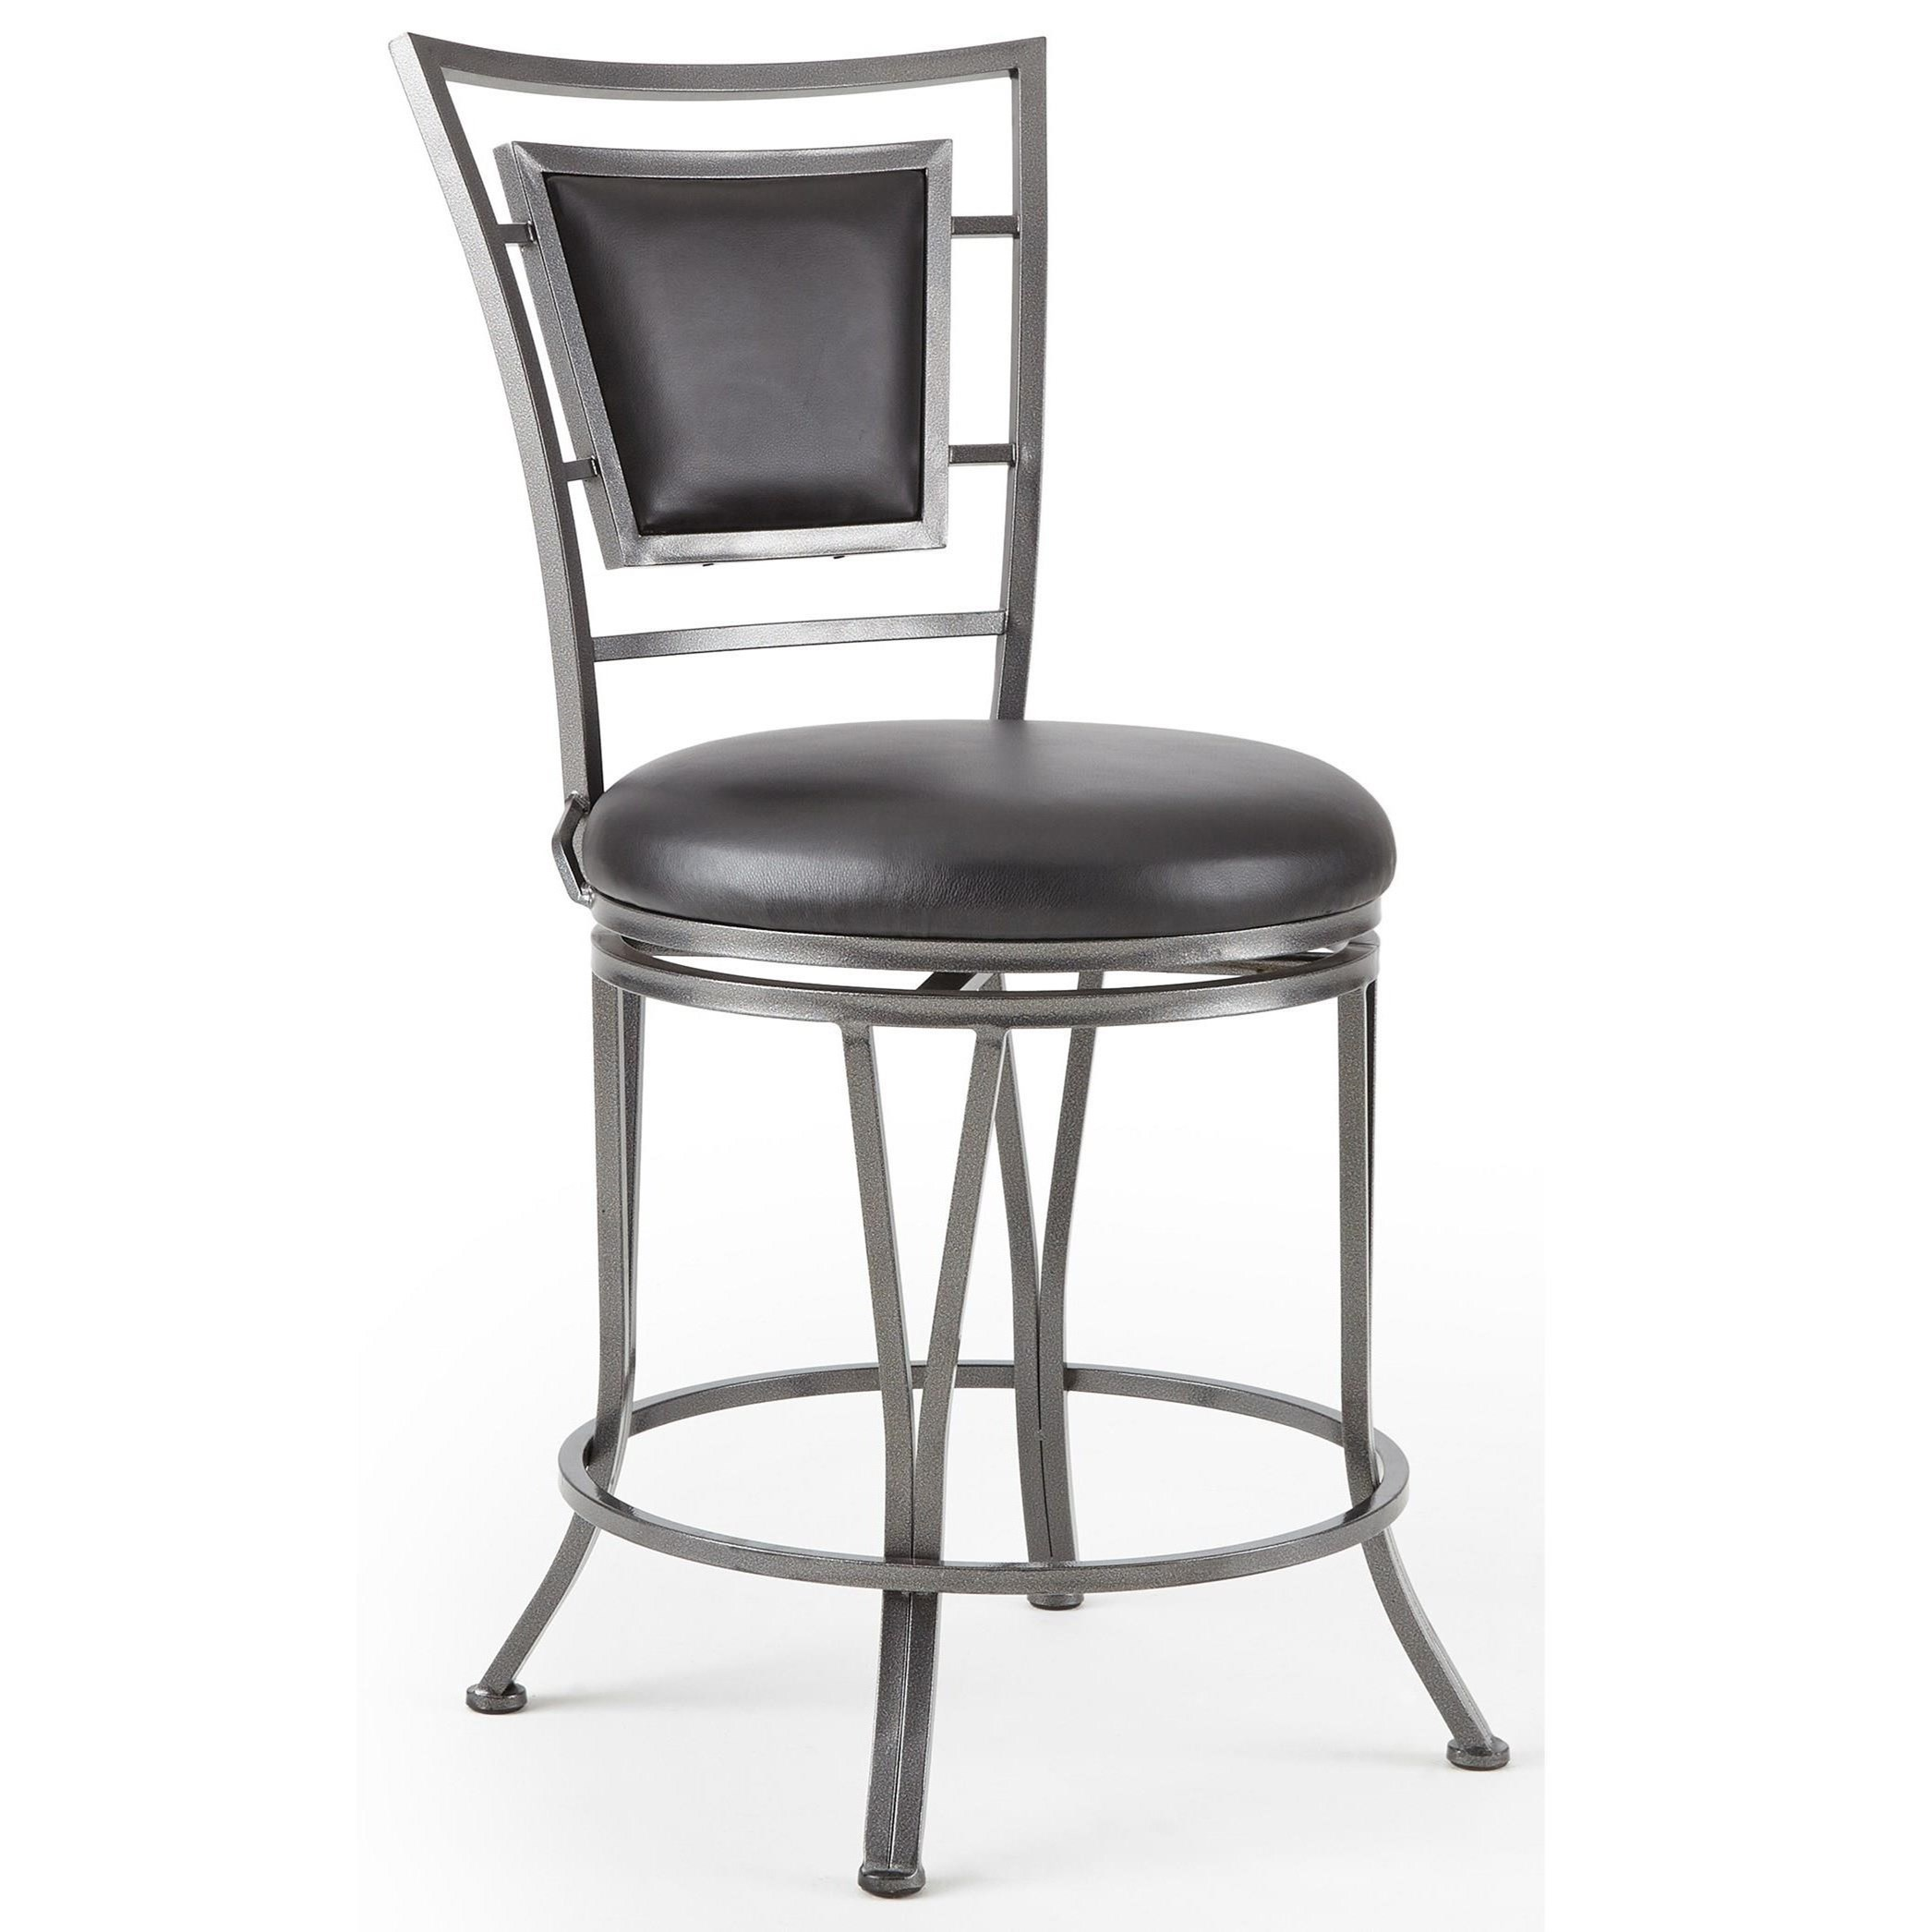 Steve Silver Atena 360 176 Swivel Counter Stool With Flame